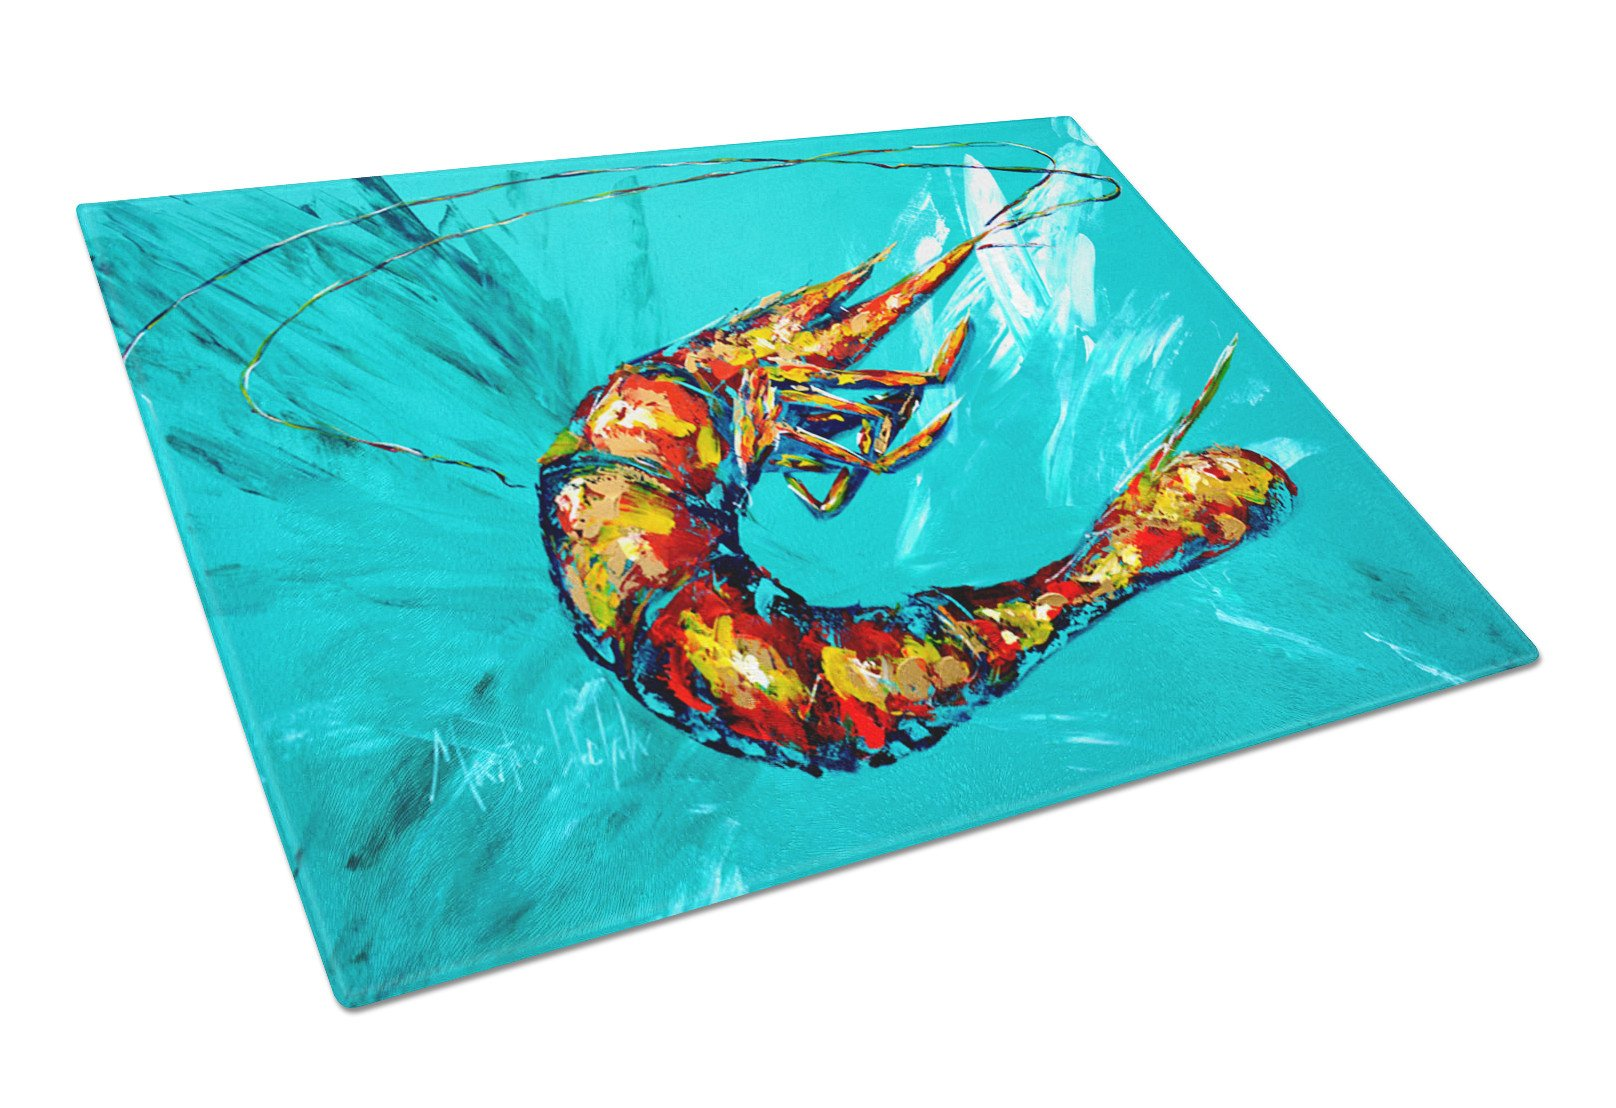 Shrimp Teal Shrimp Glass Cutting Board Large by Caroline's Treasures